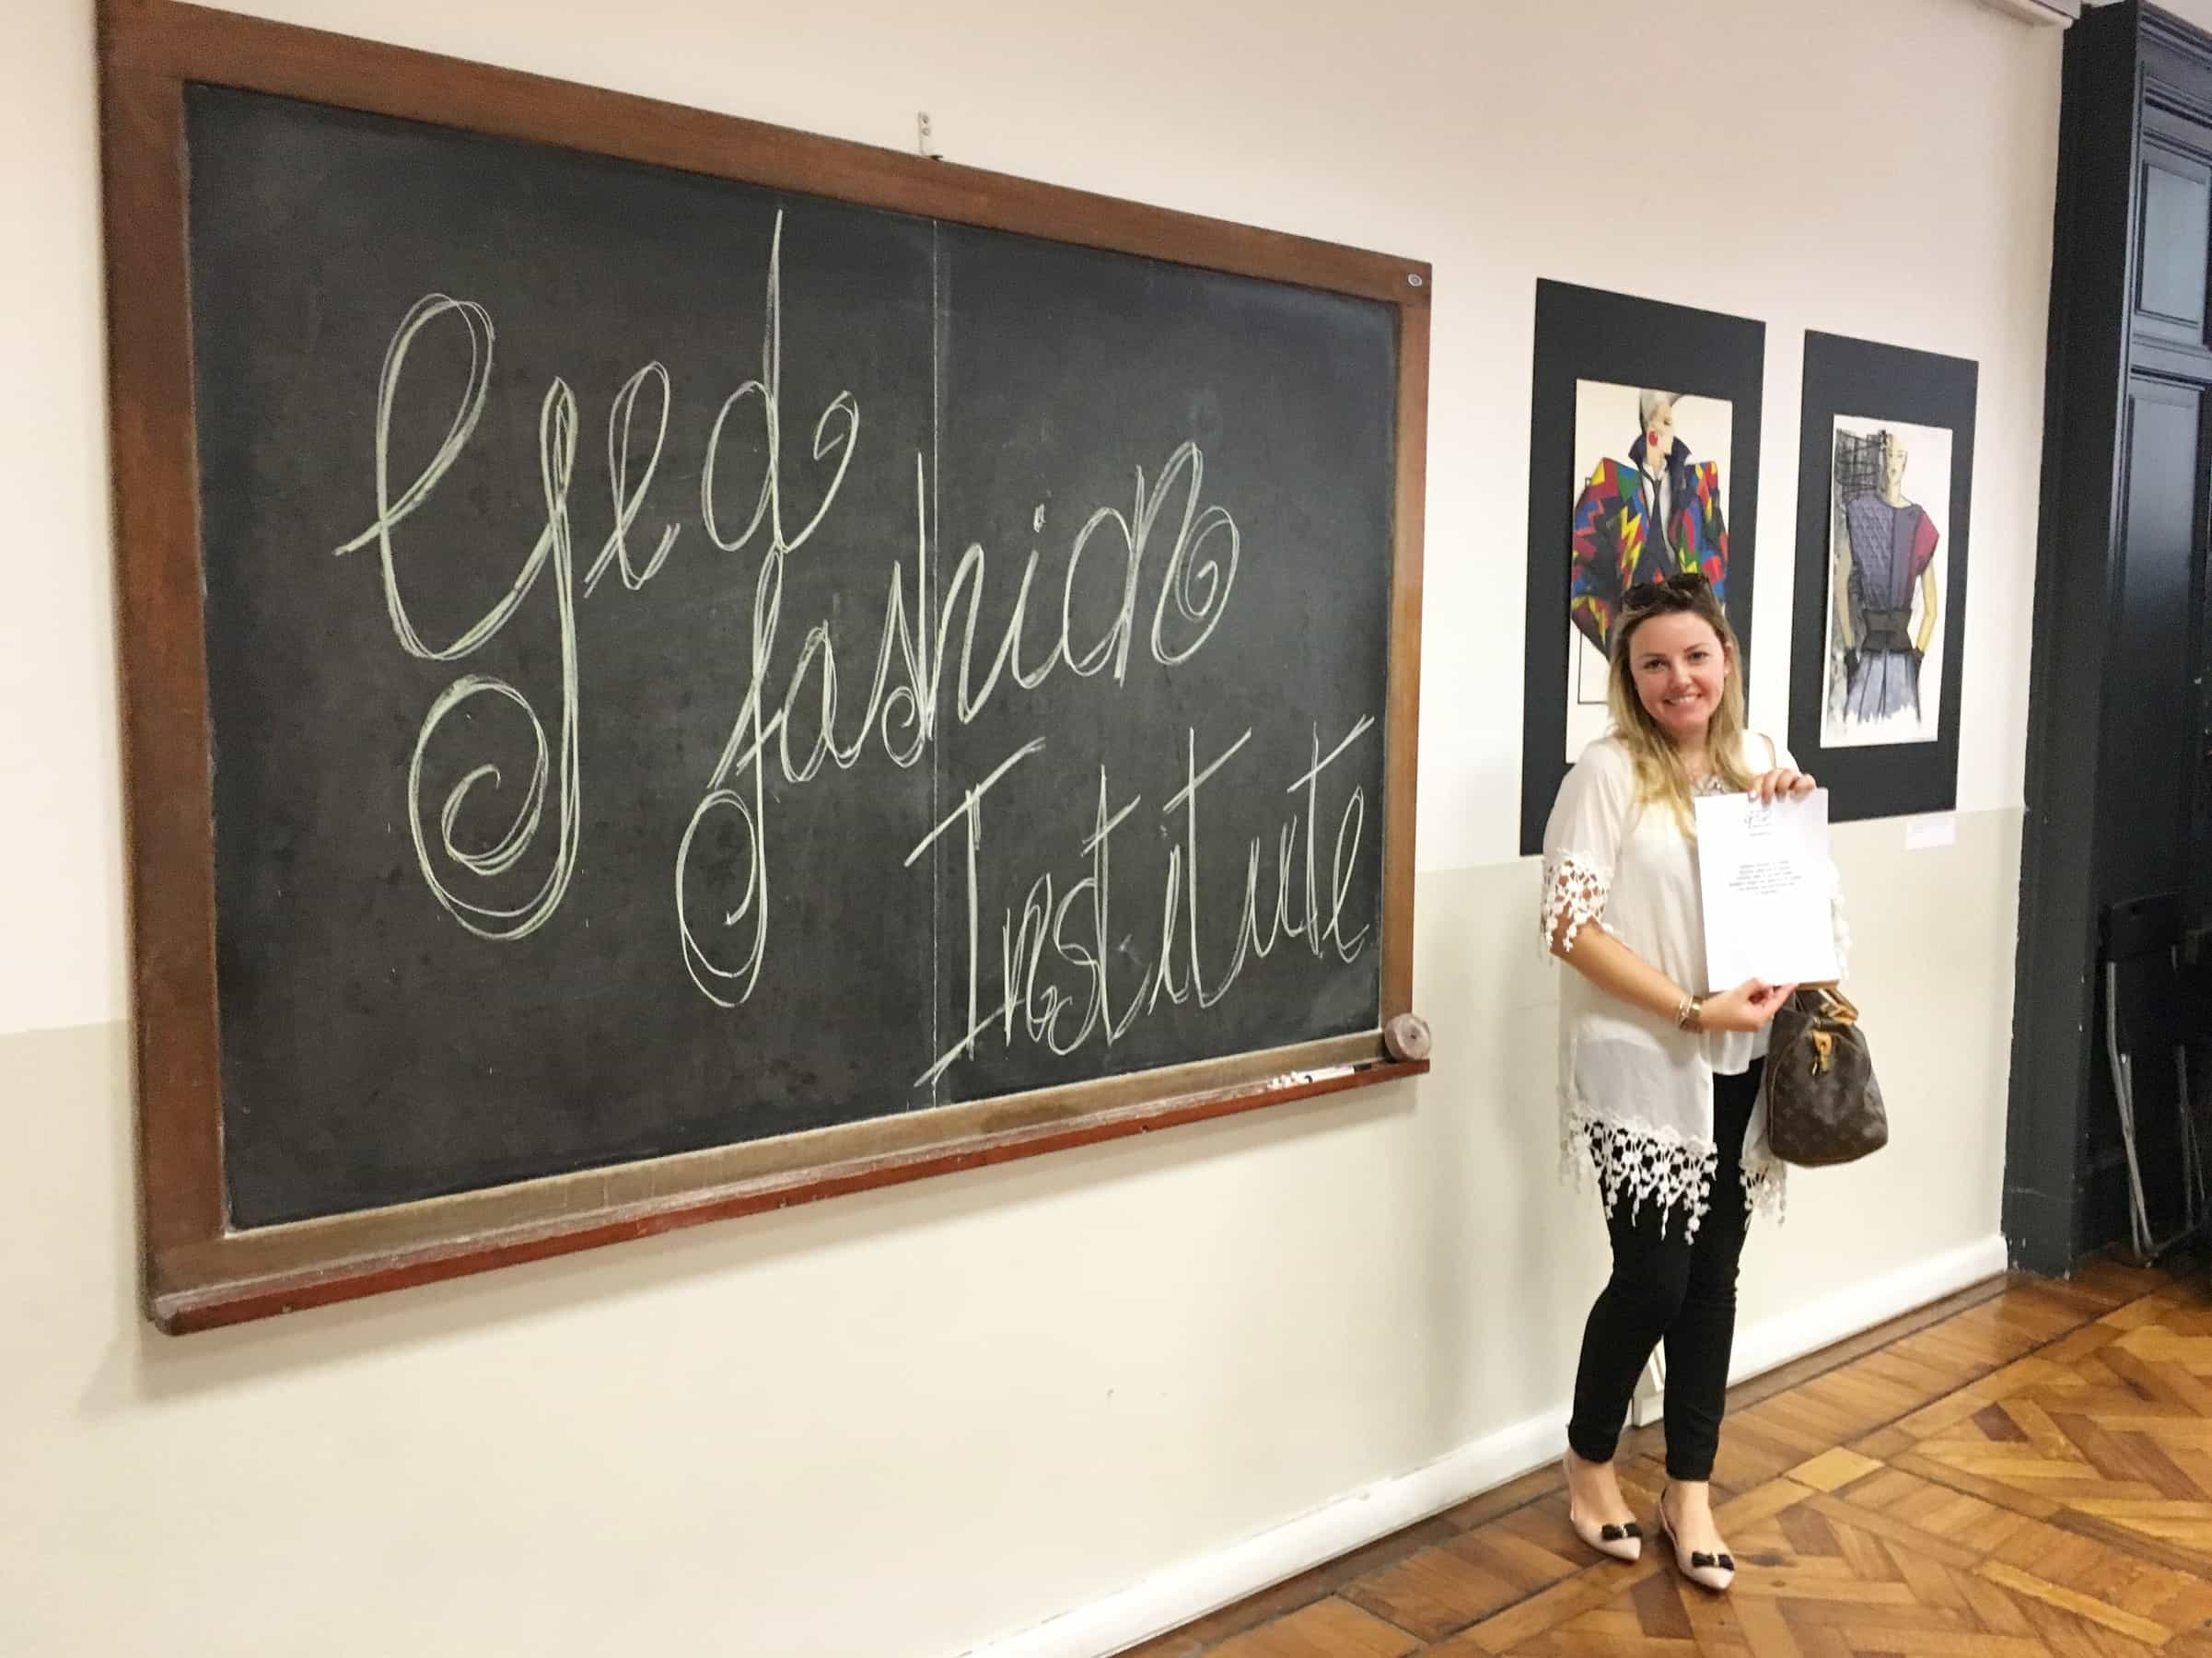 GED Fashion Institute